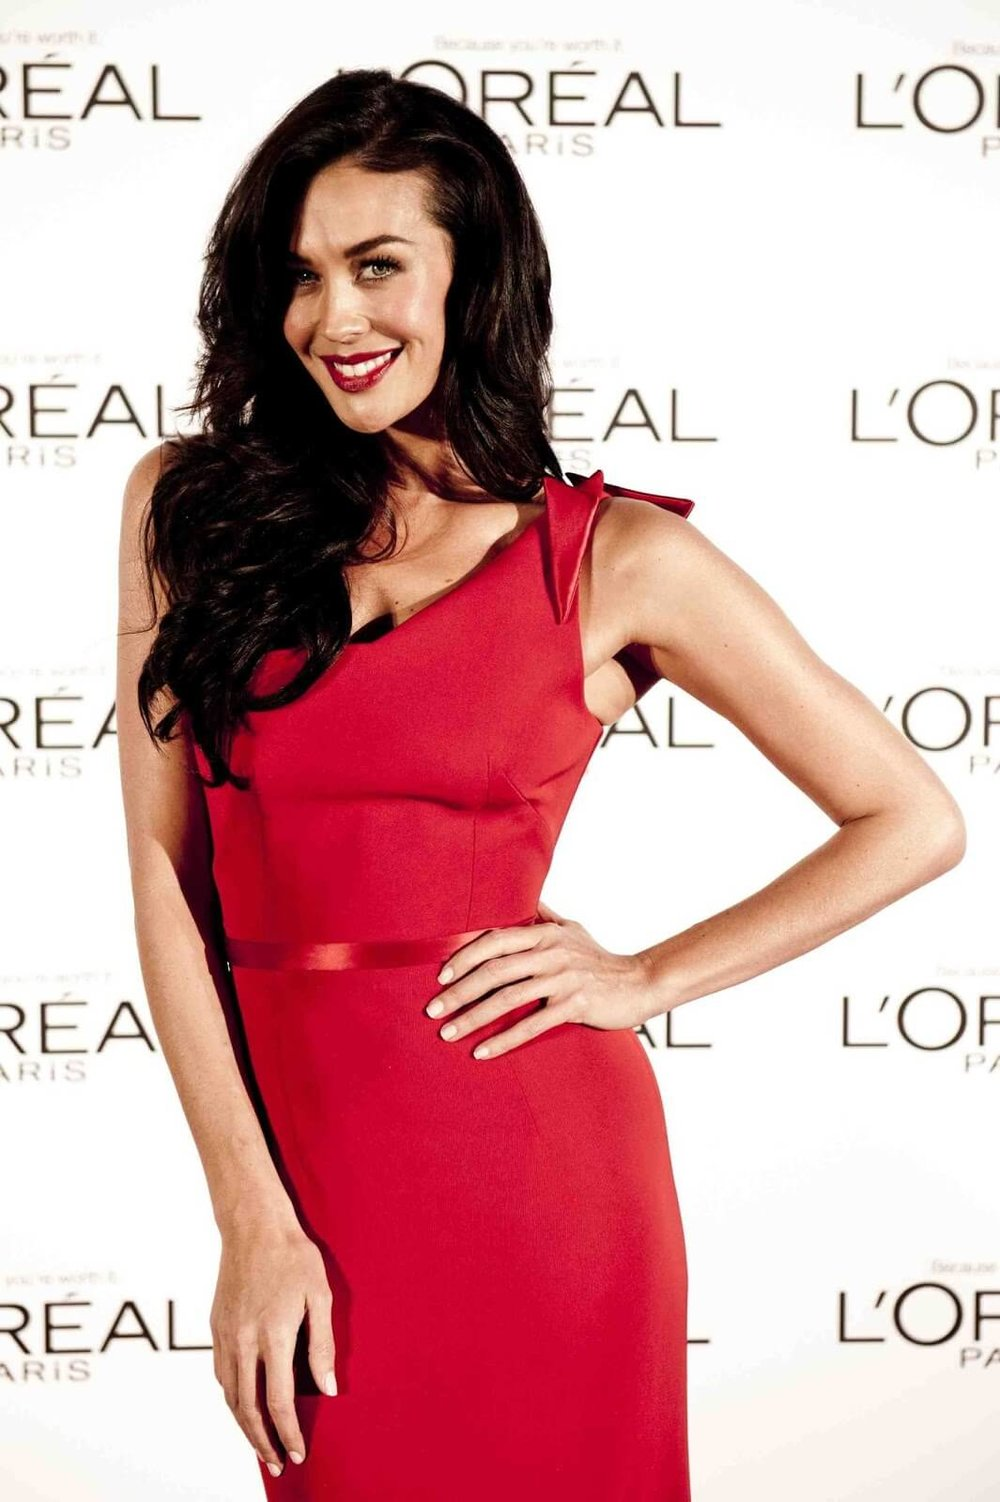 MEGAN GALE - THE AMBASSADOR .jpg